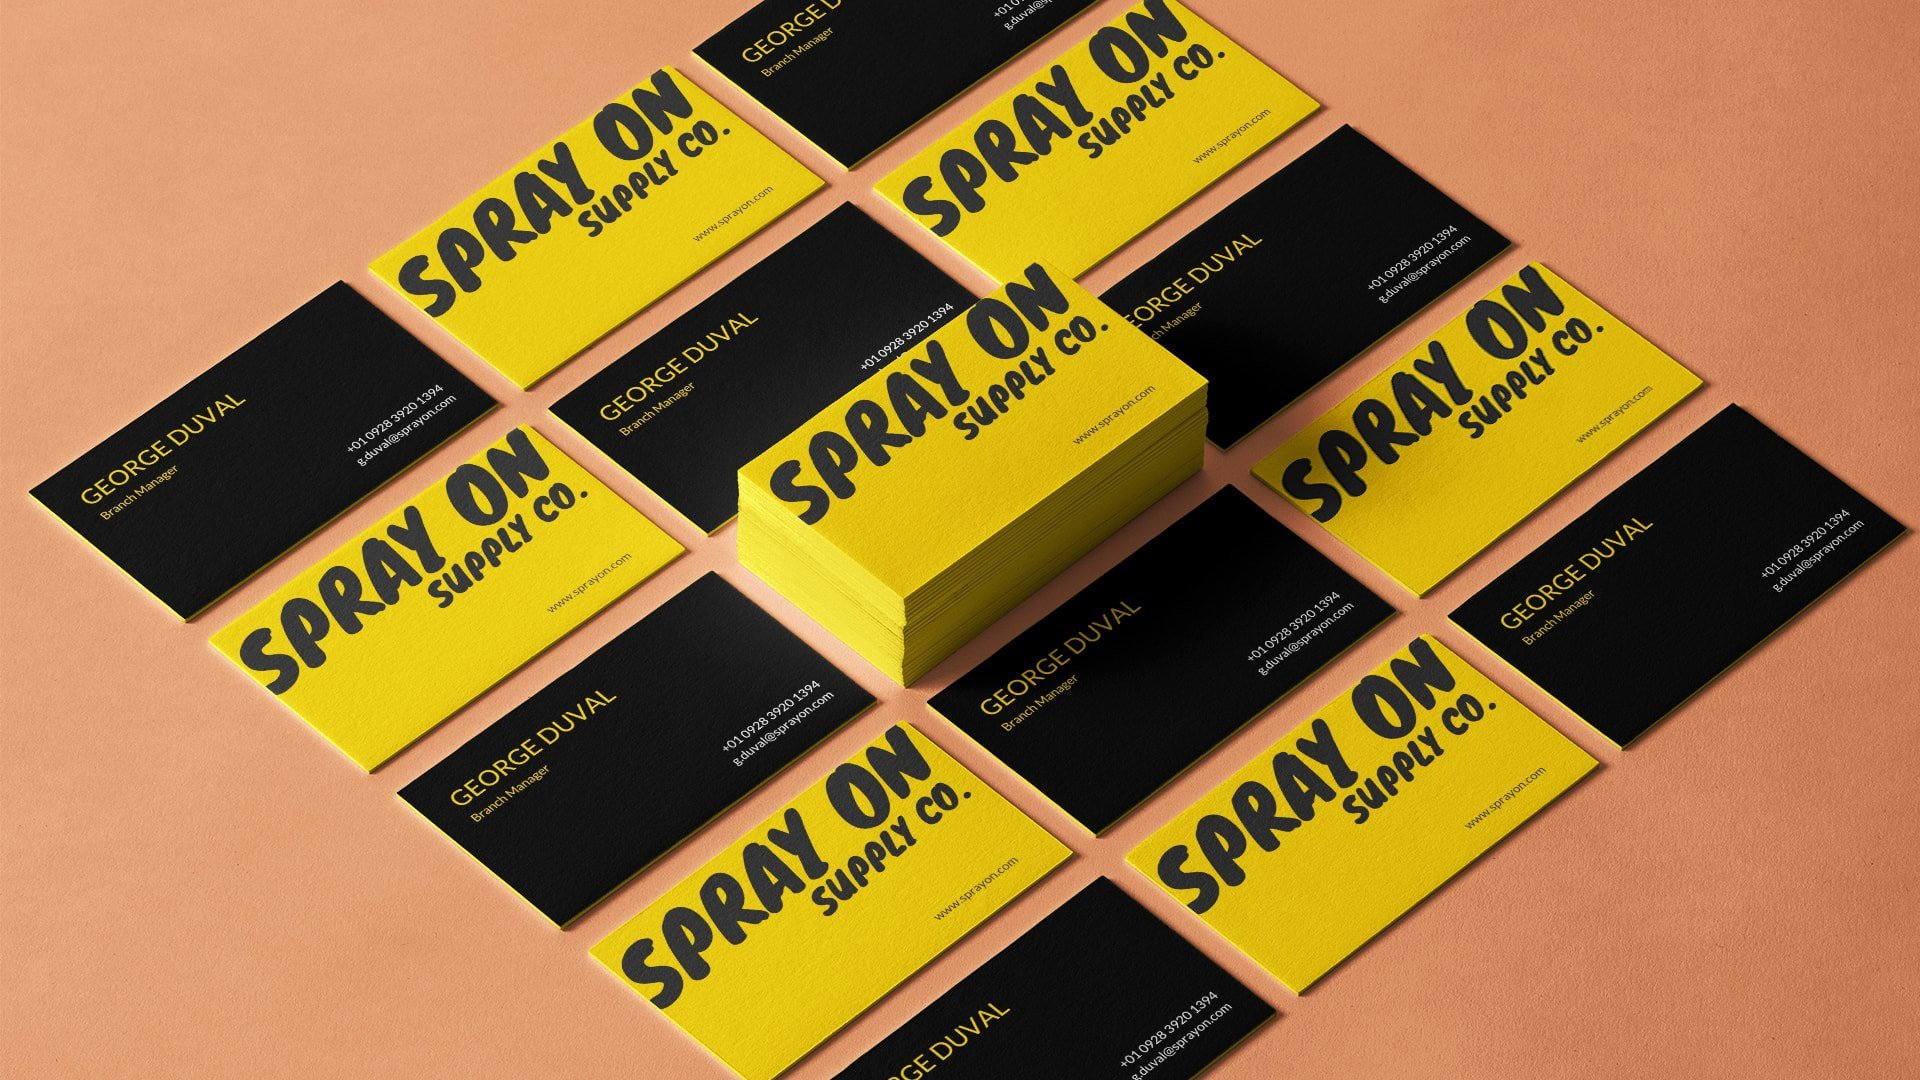 40 creative business cards ideas and how to get the look_featured image